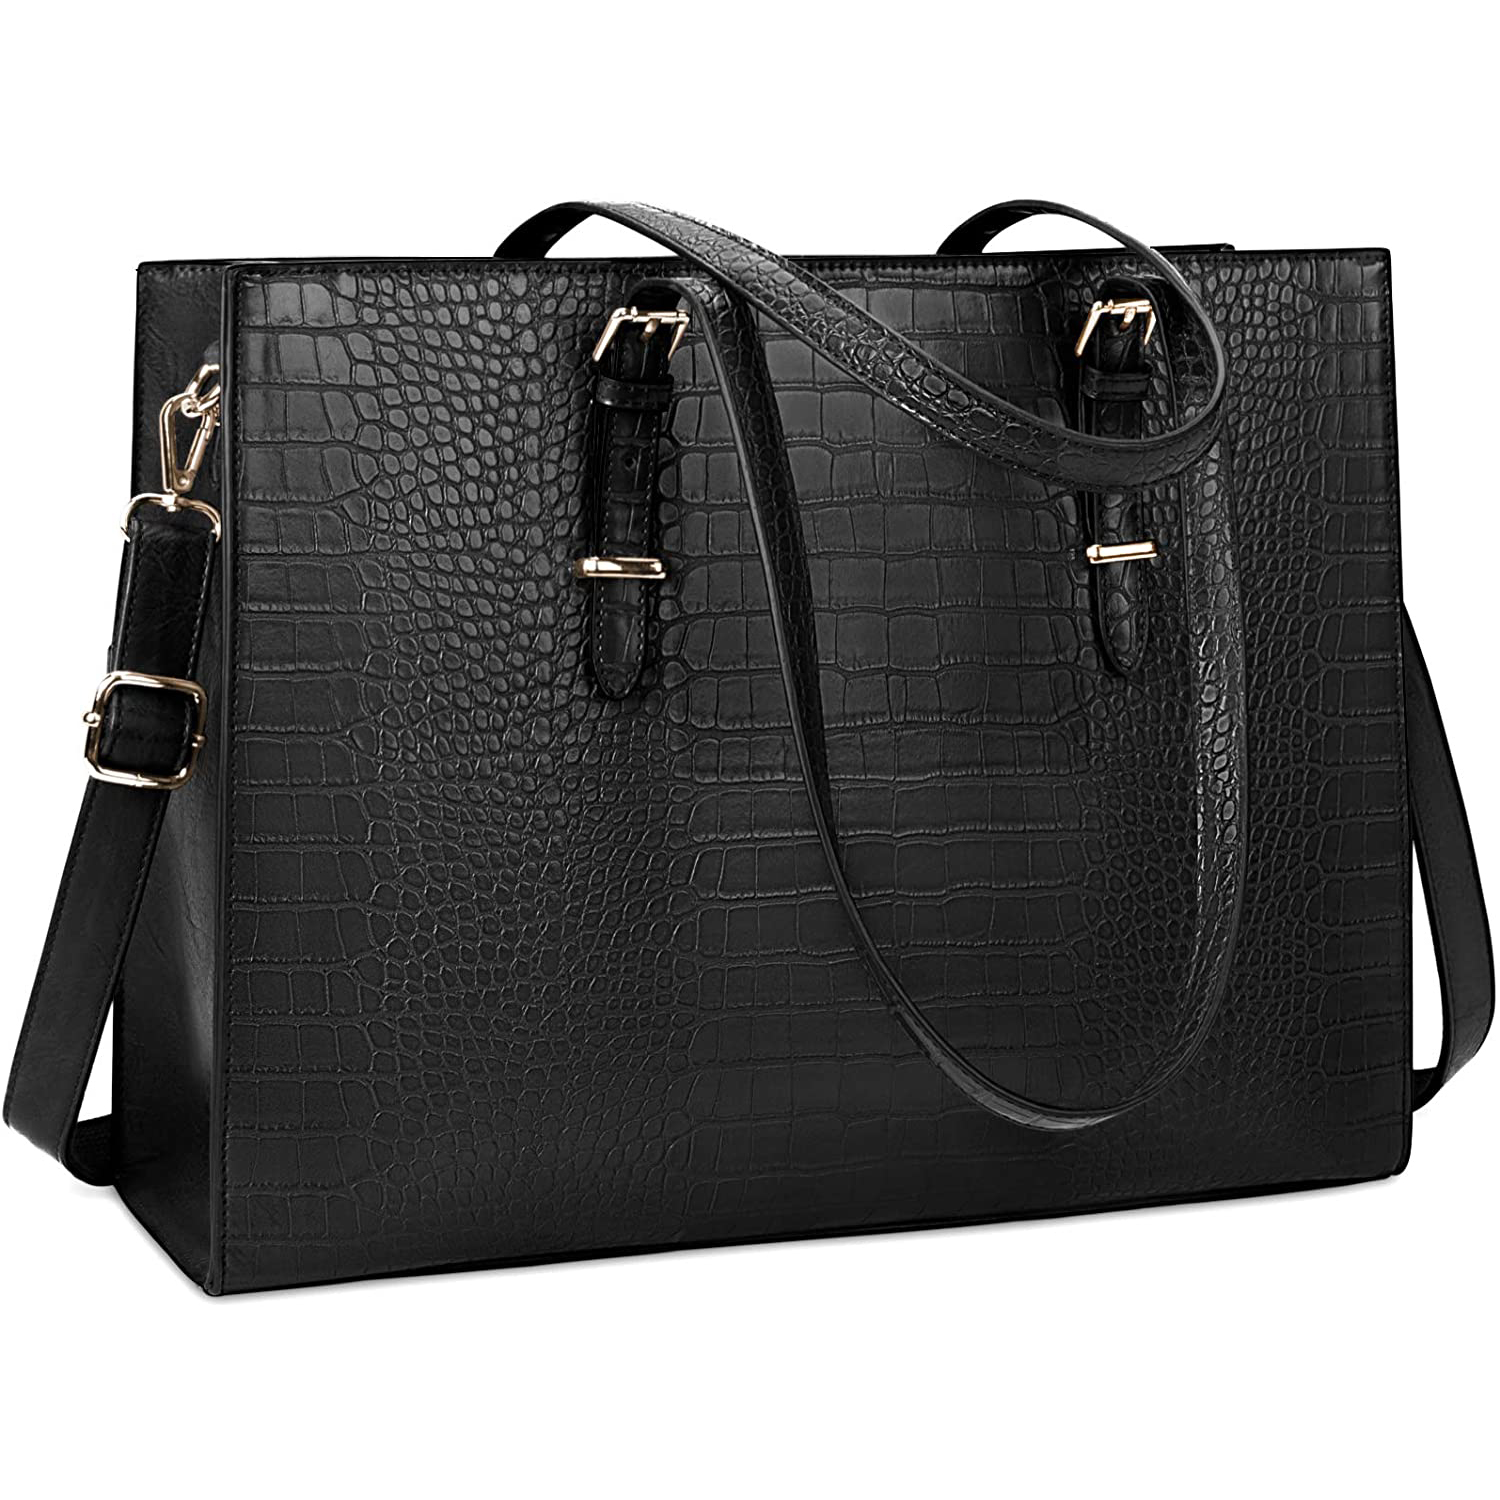 snakeskin leather tote